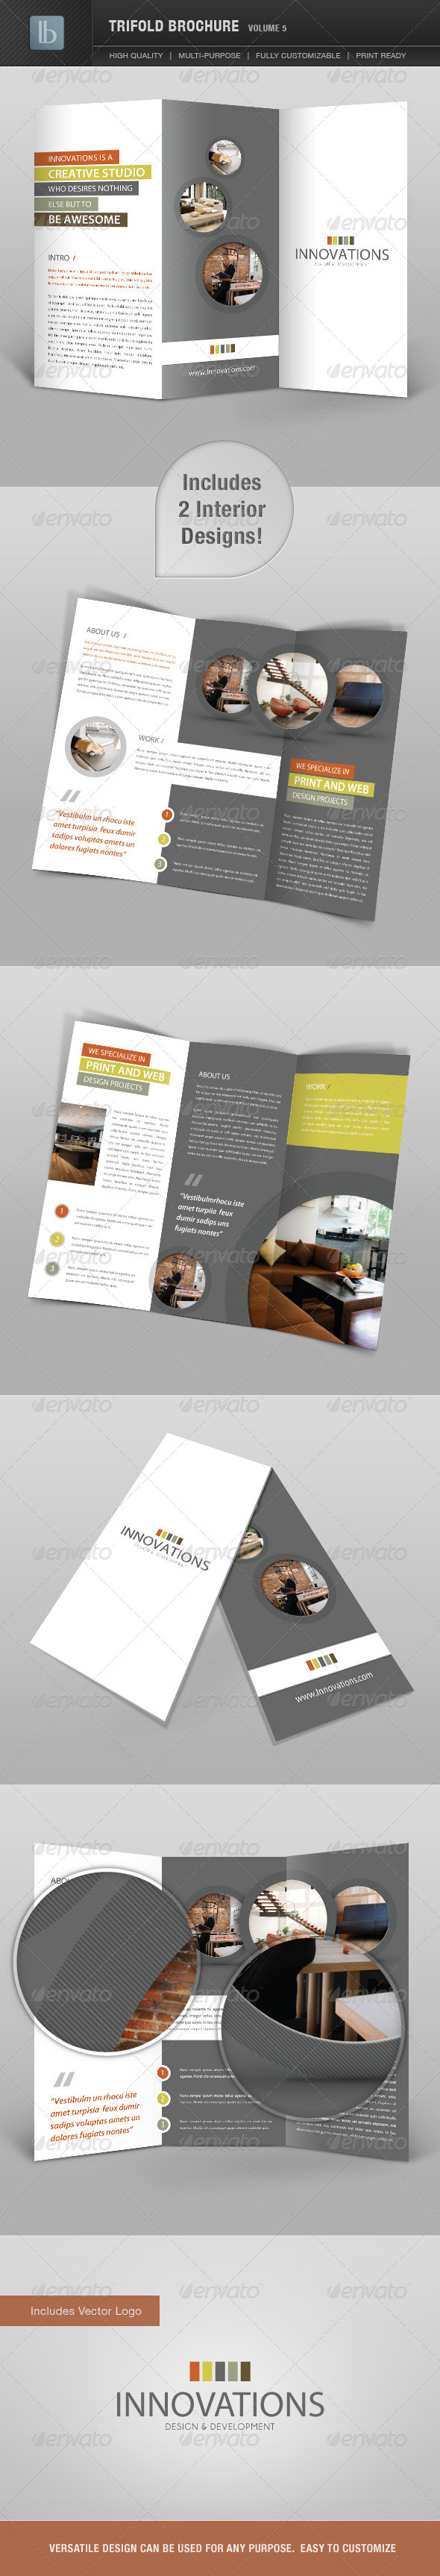 GraphicRiver Trifold Brochure Volume 5 2363921